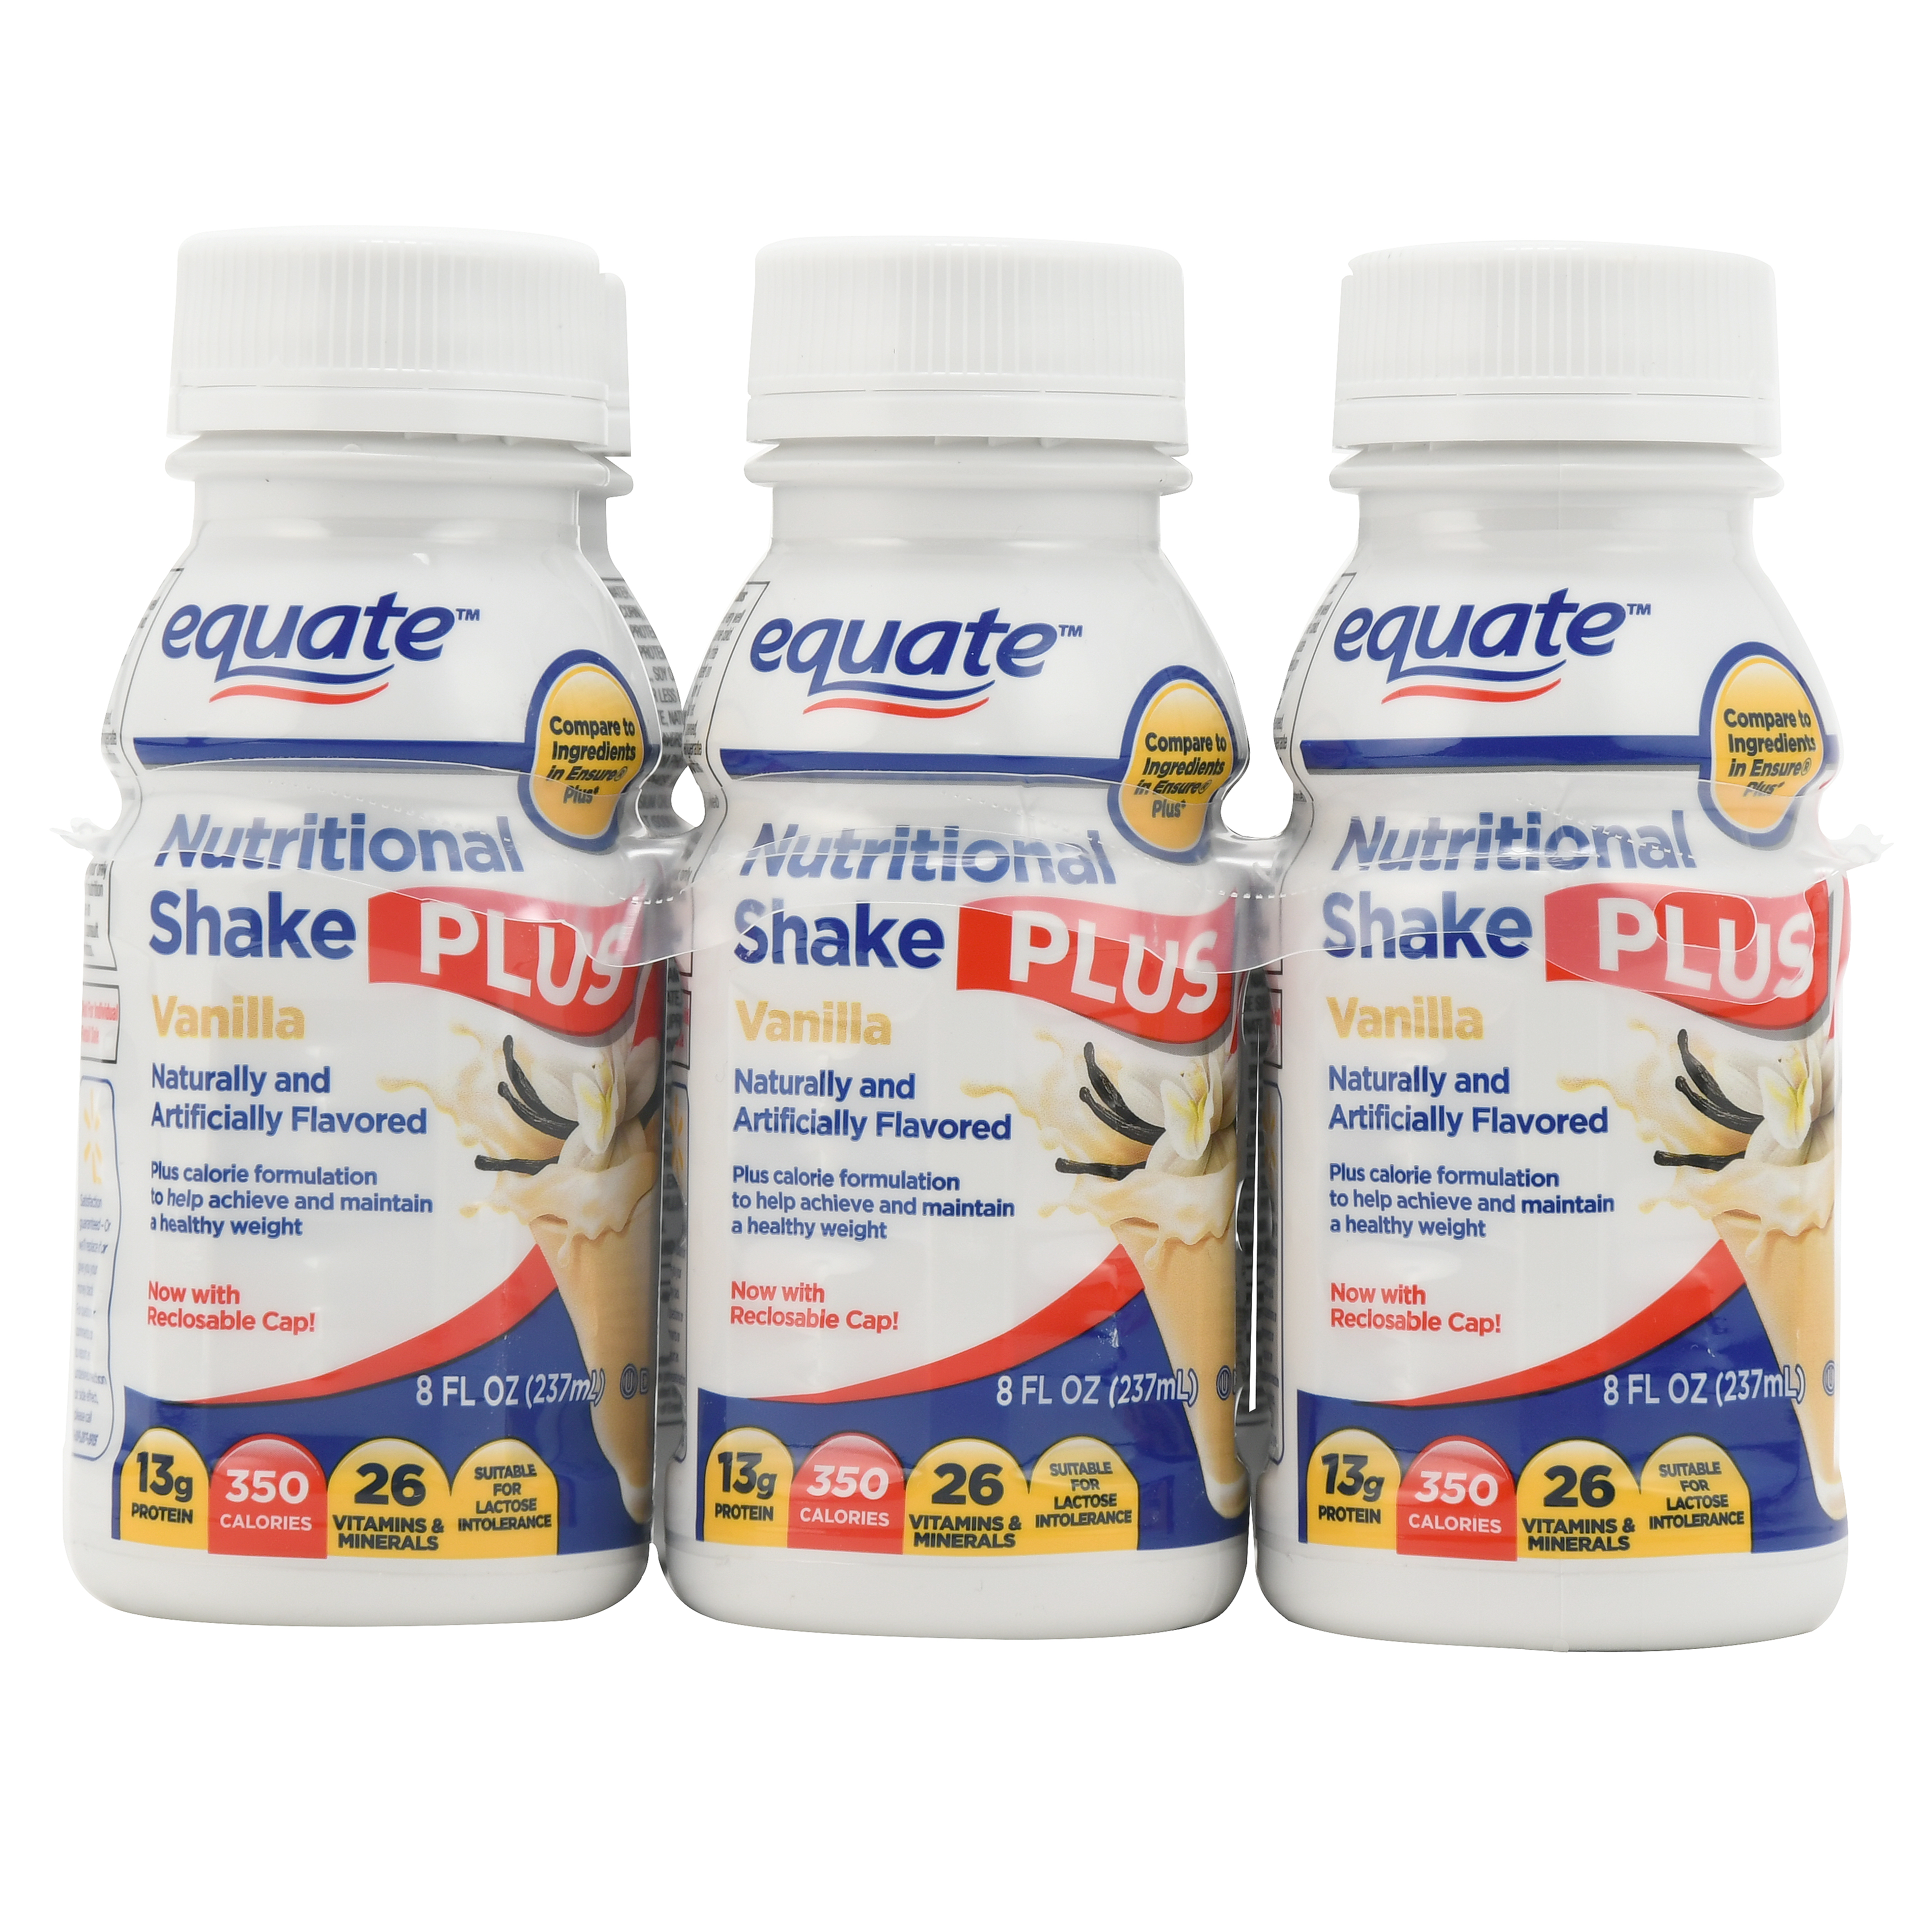 Equate Nutritional Shake Plus, Vanilla, 8 Oz, 6 Ct